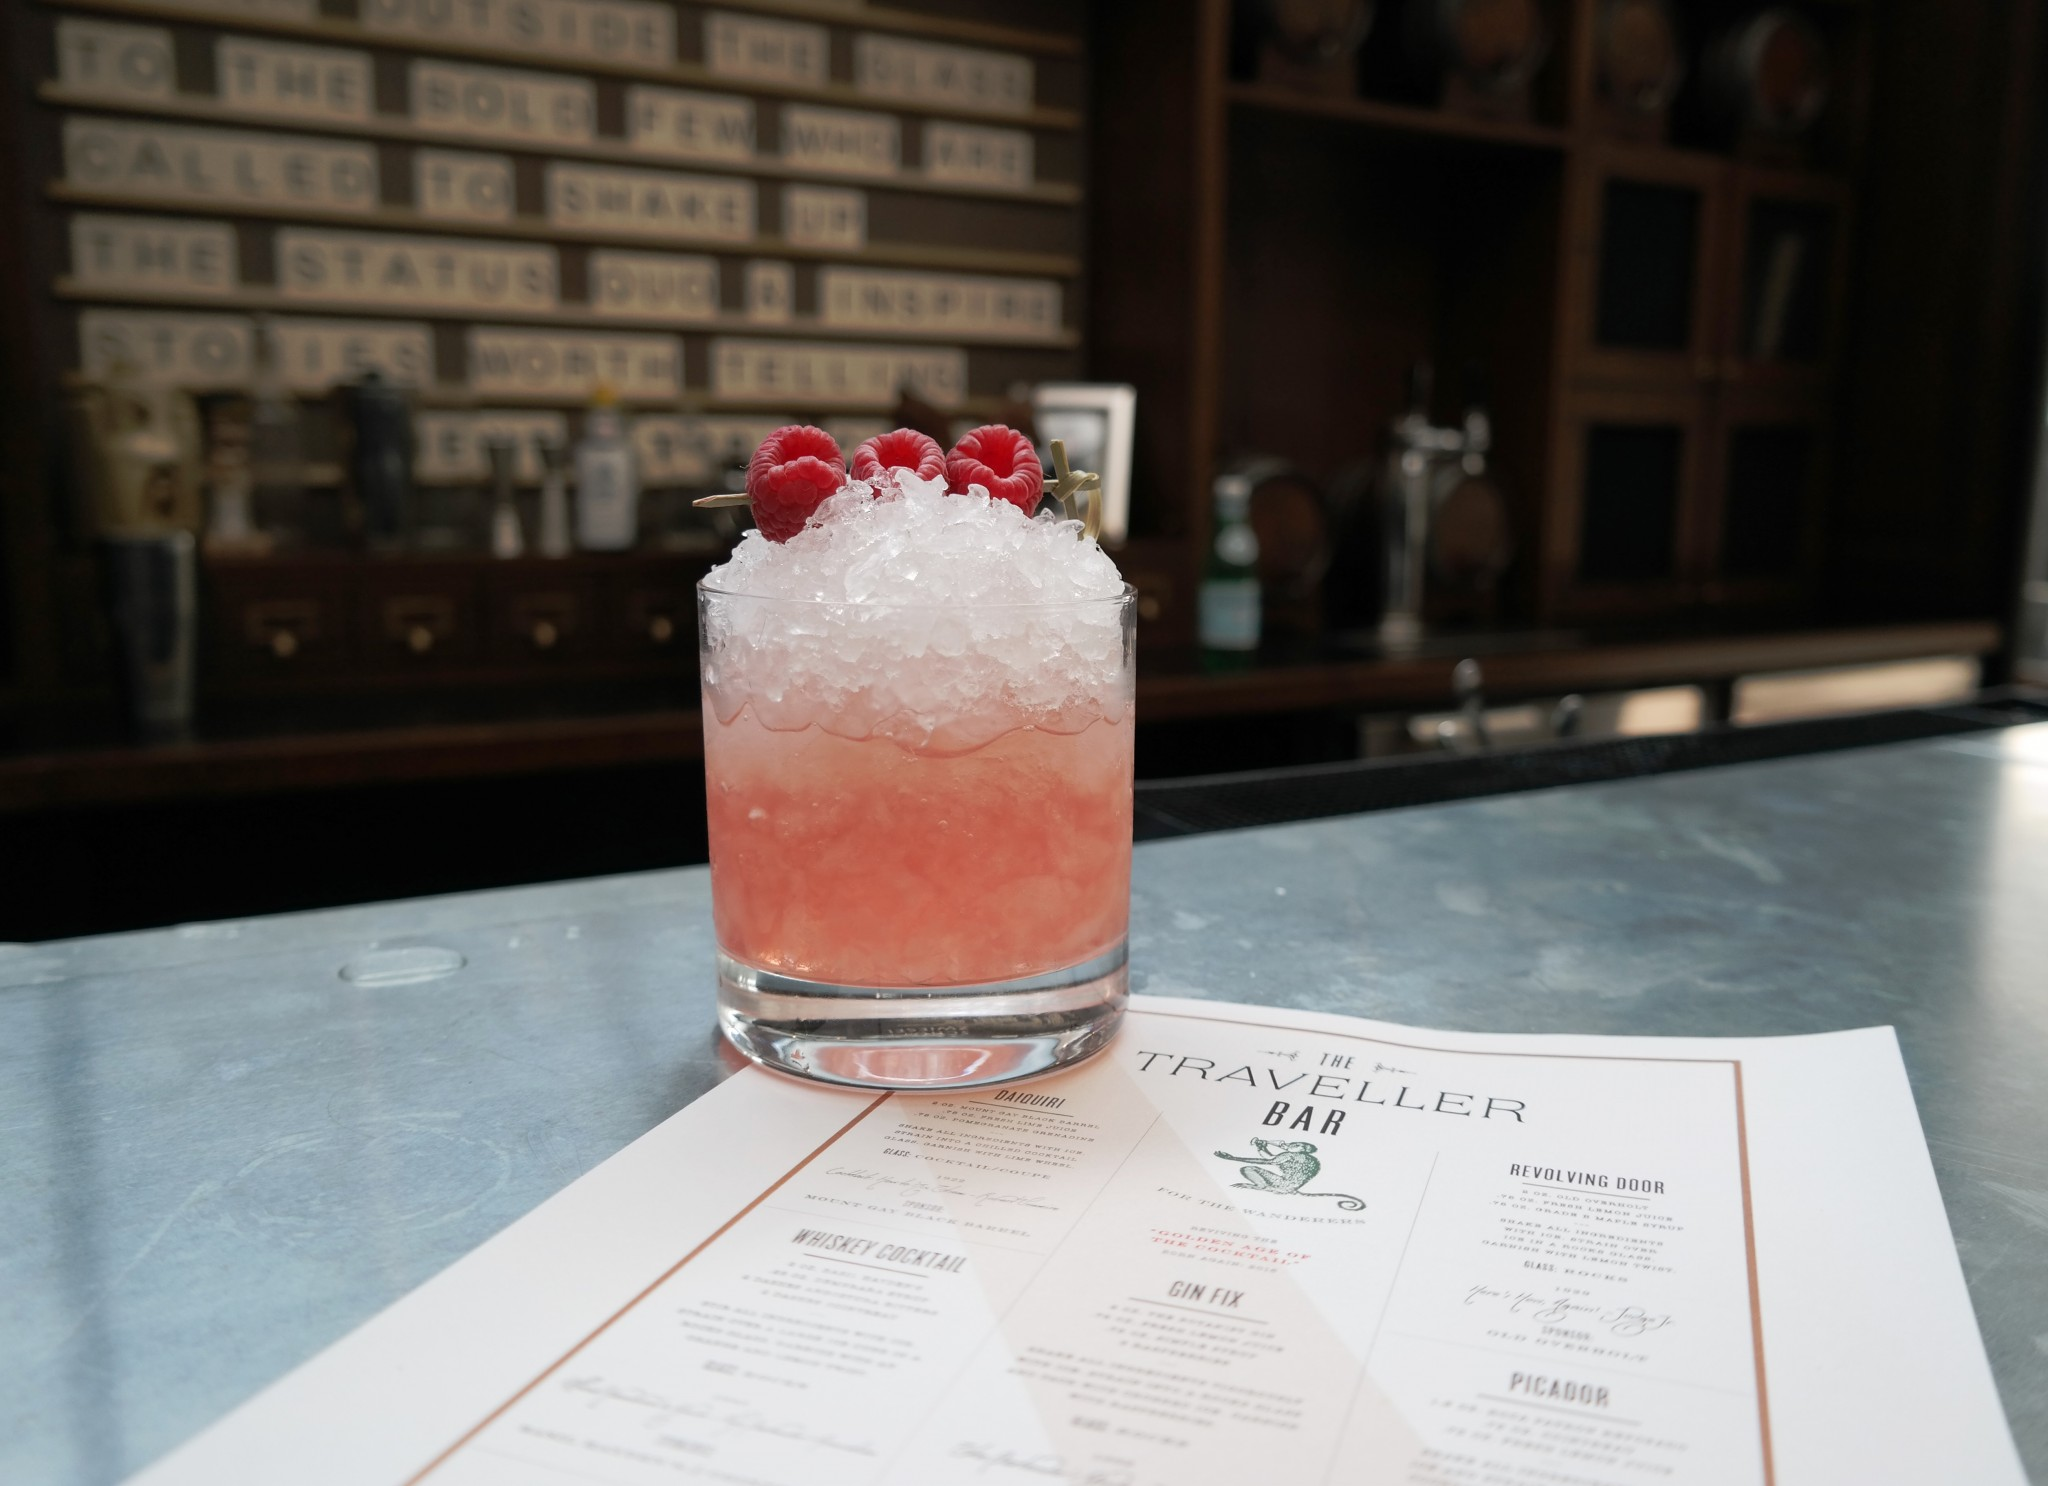 The Traveller Bar - Gin Cocktail